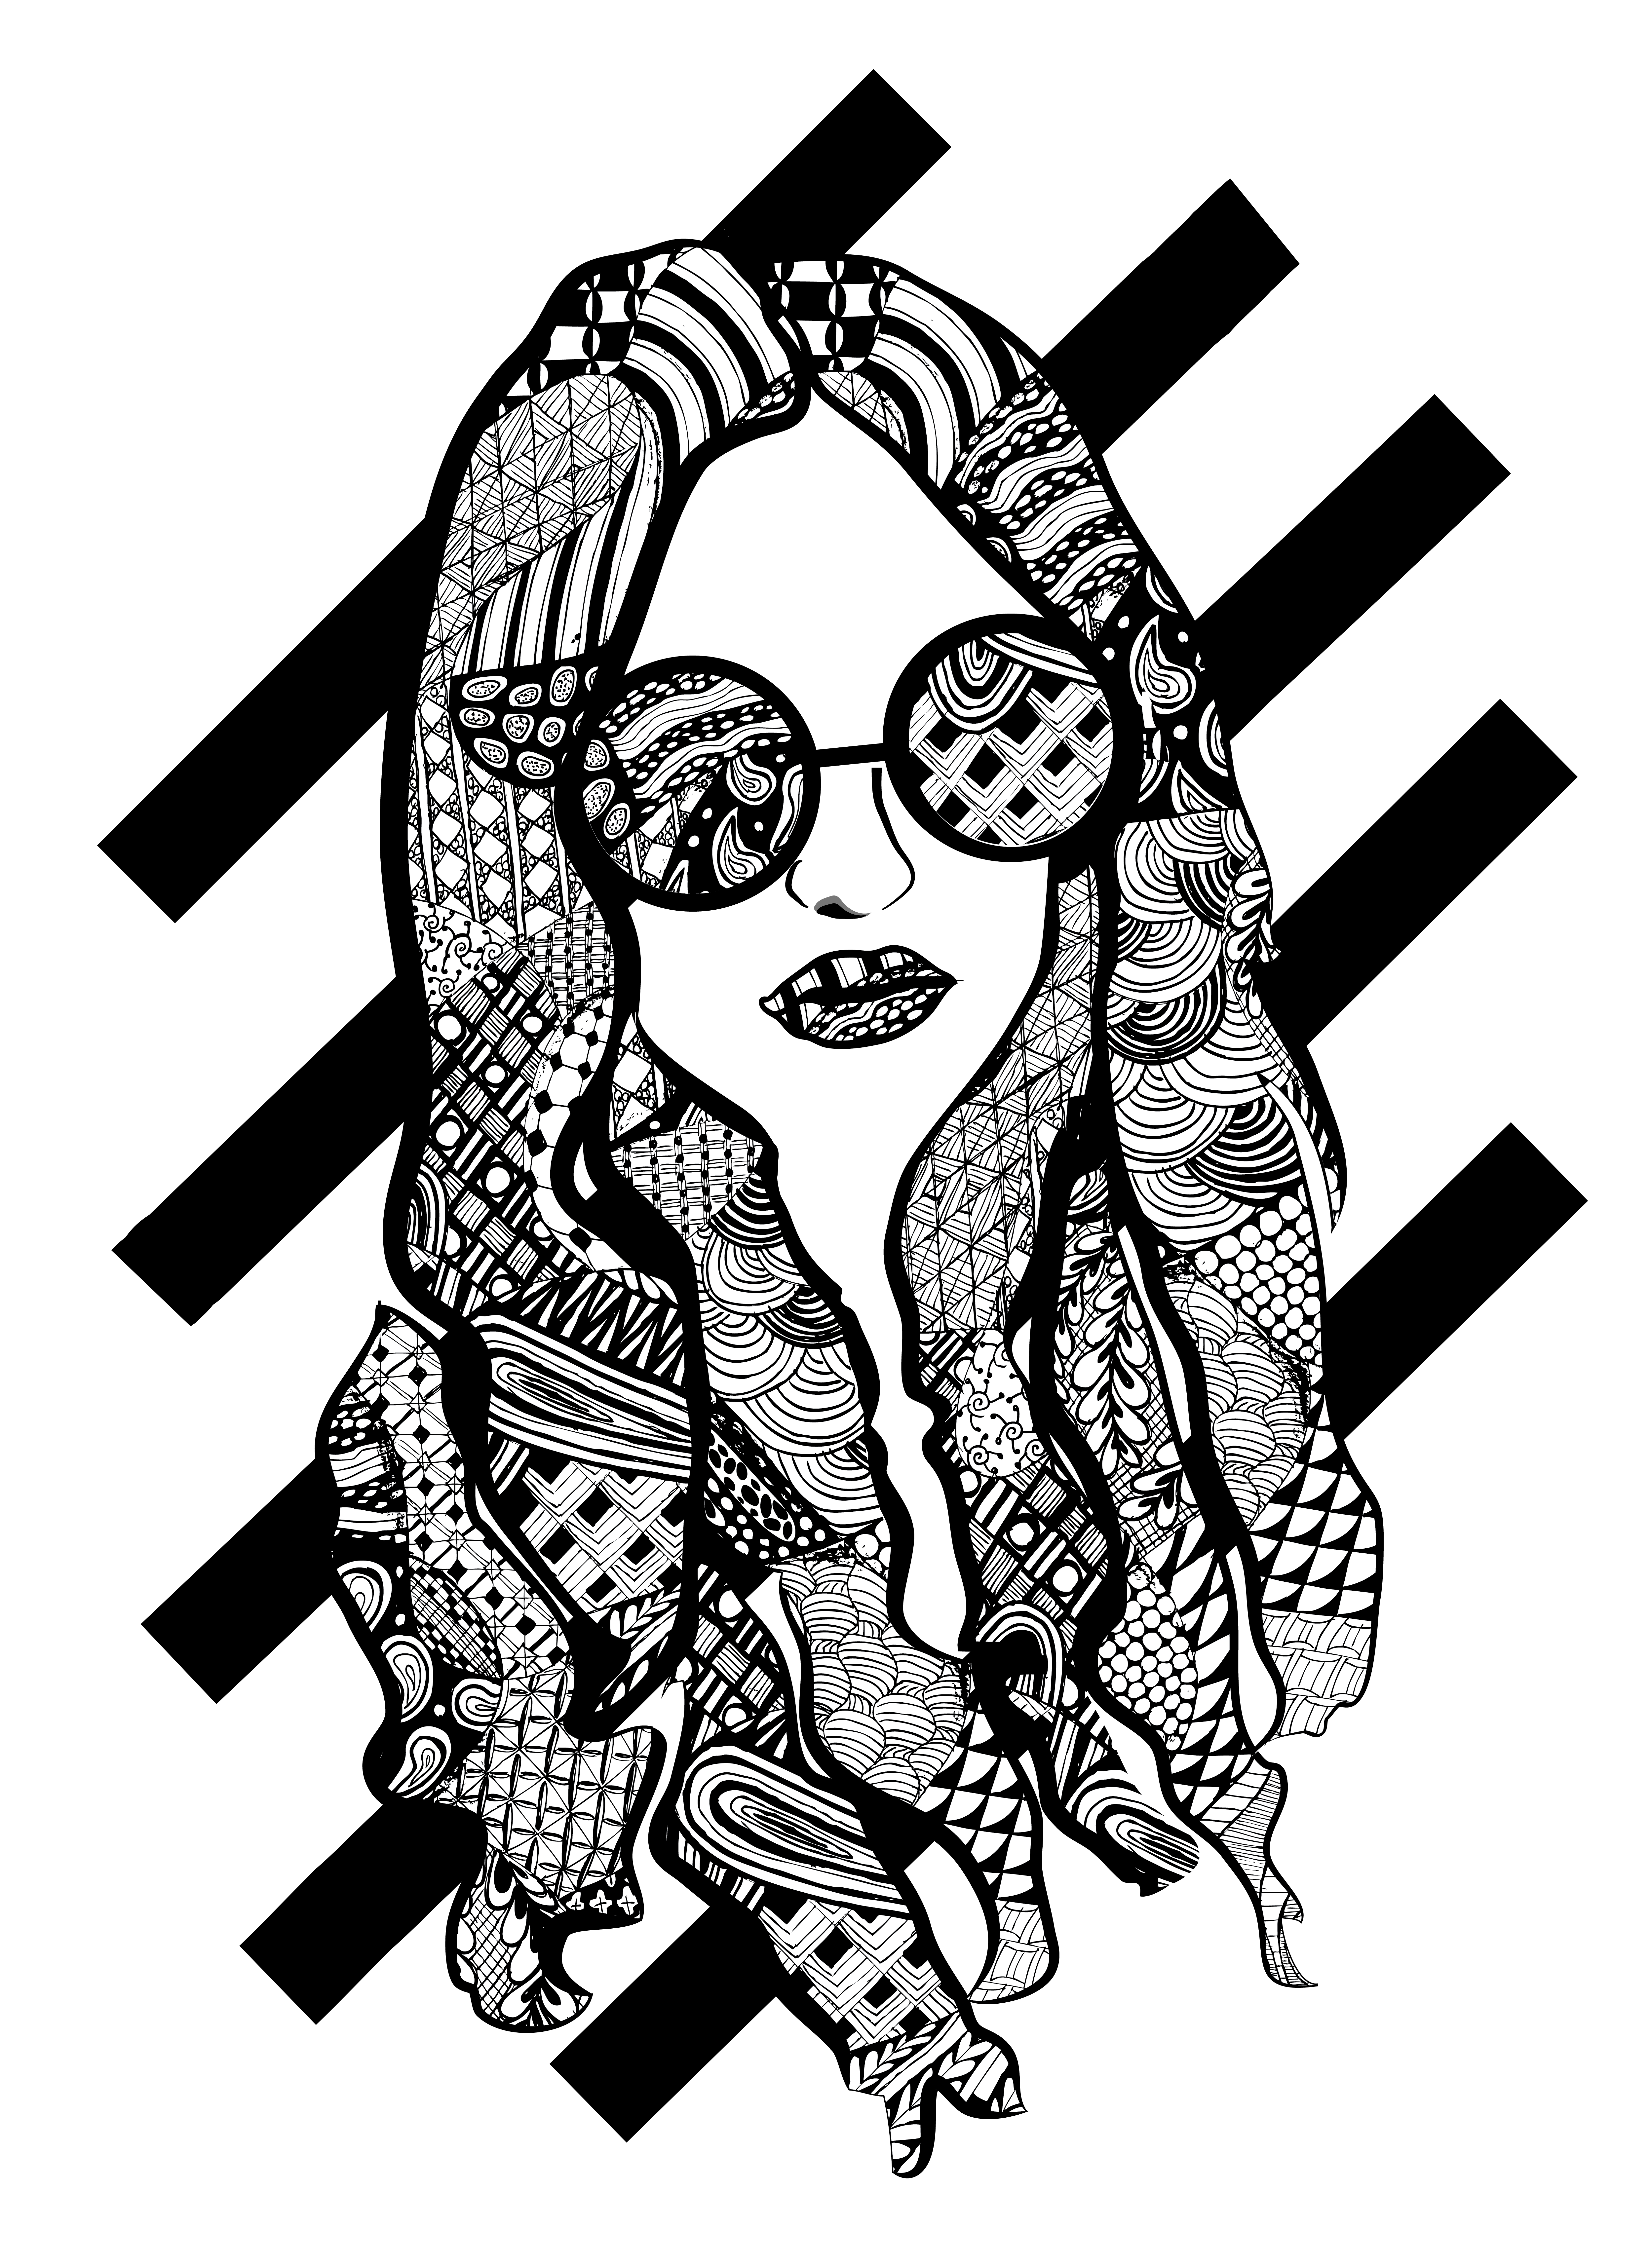 Vote drawing black and white. For me the visual